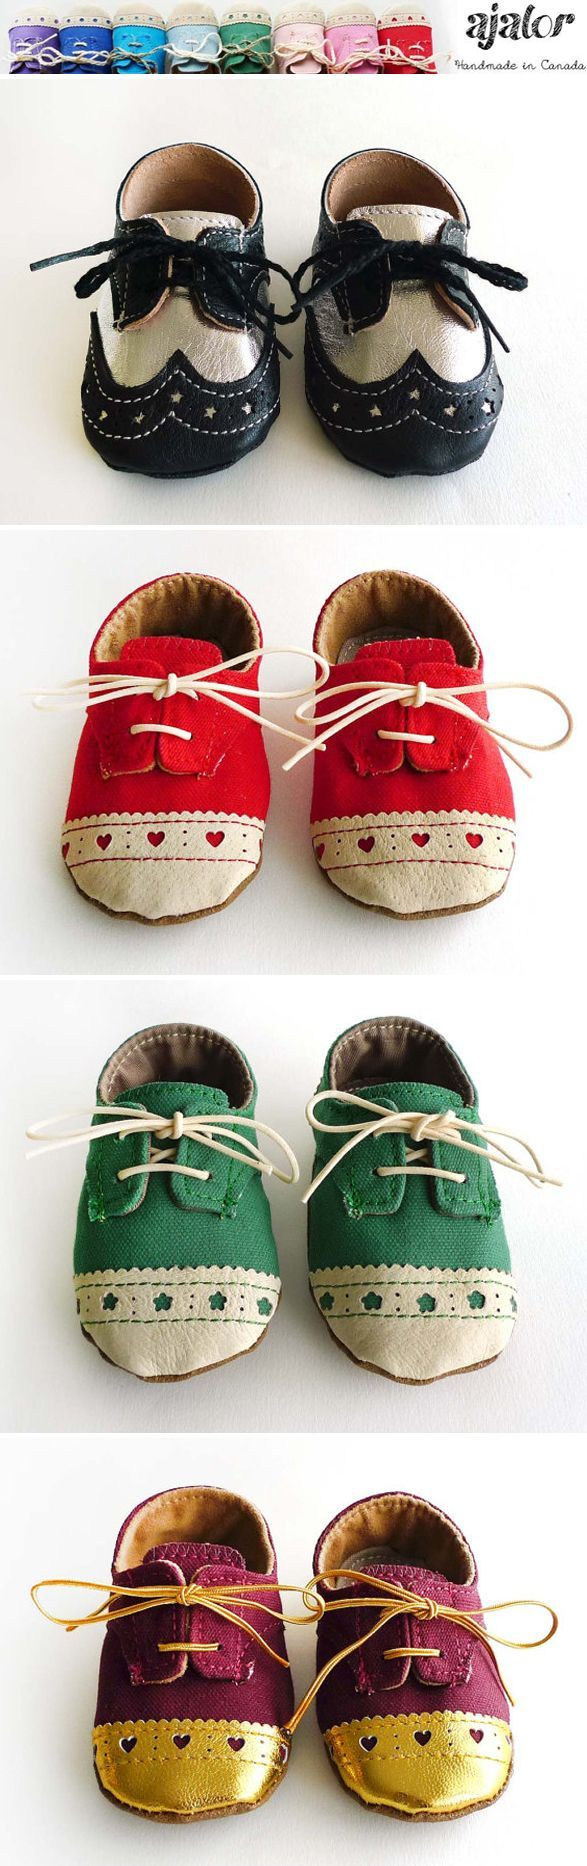 Handmade baby shoes from Ajalor.  Perfect gift for a baby shower!  #babyshoes